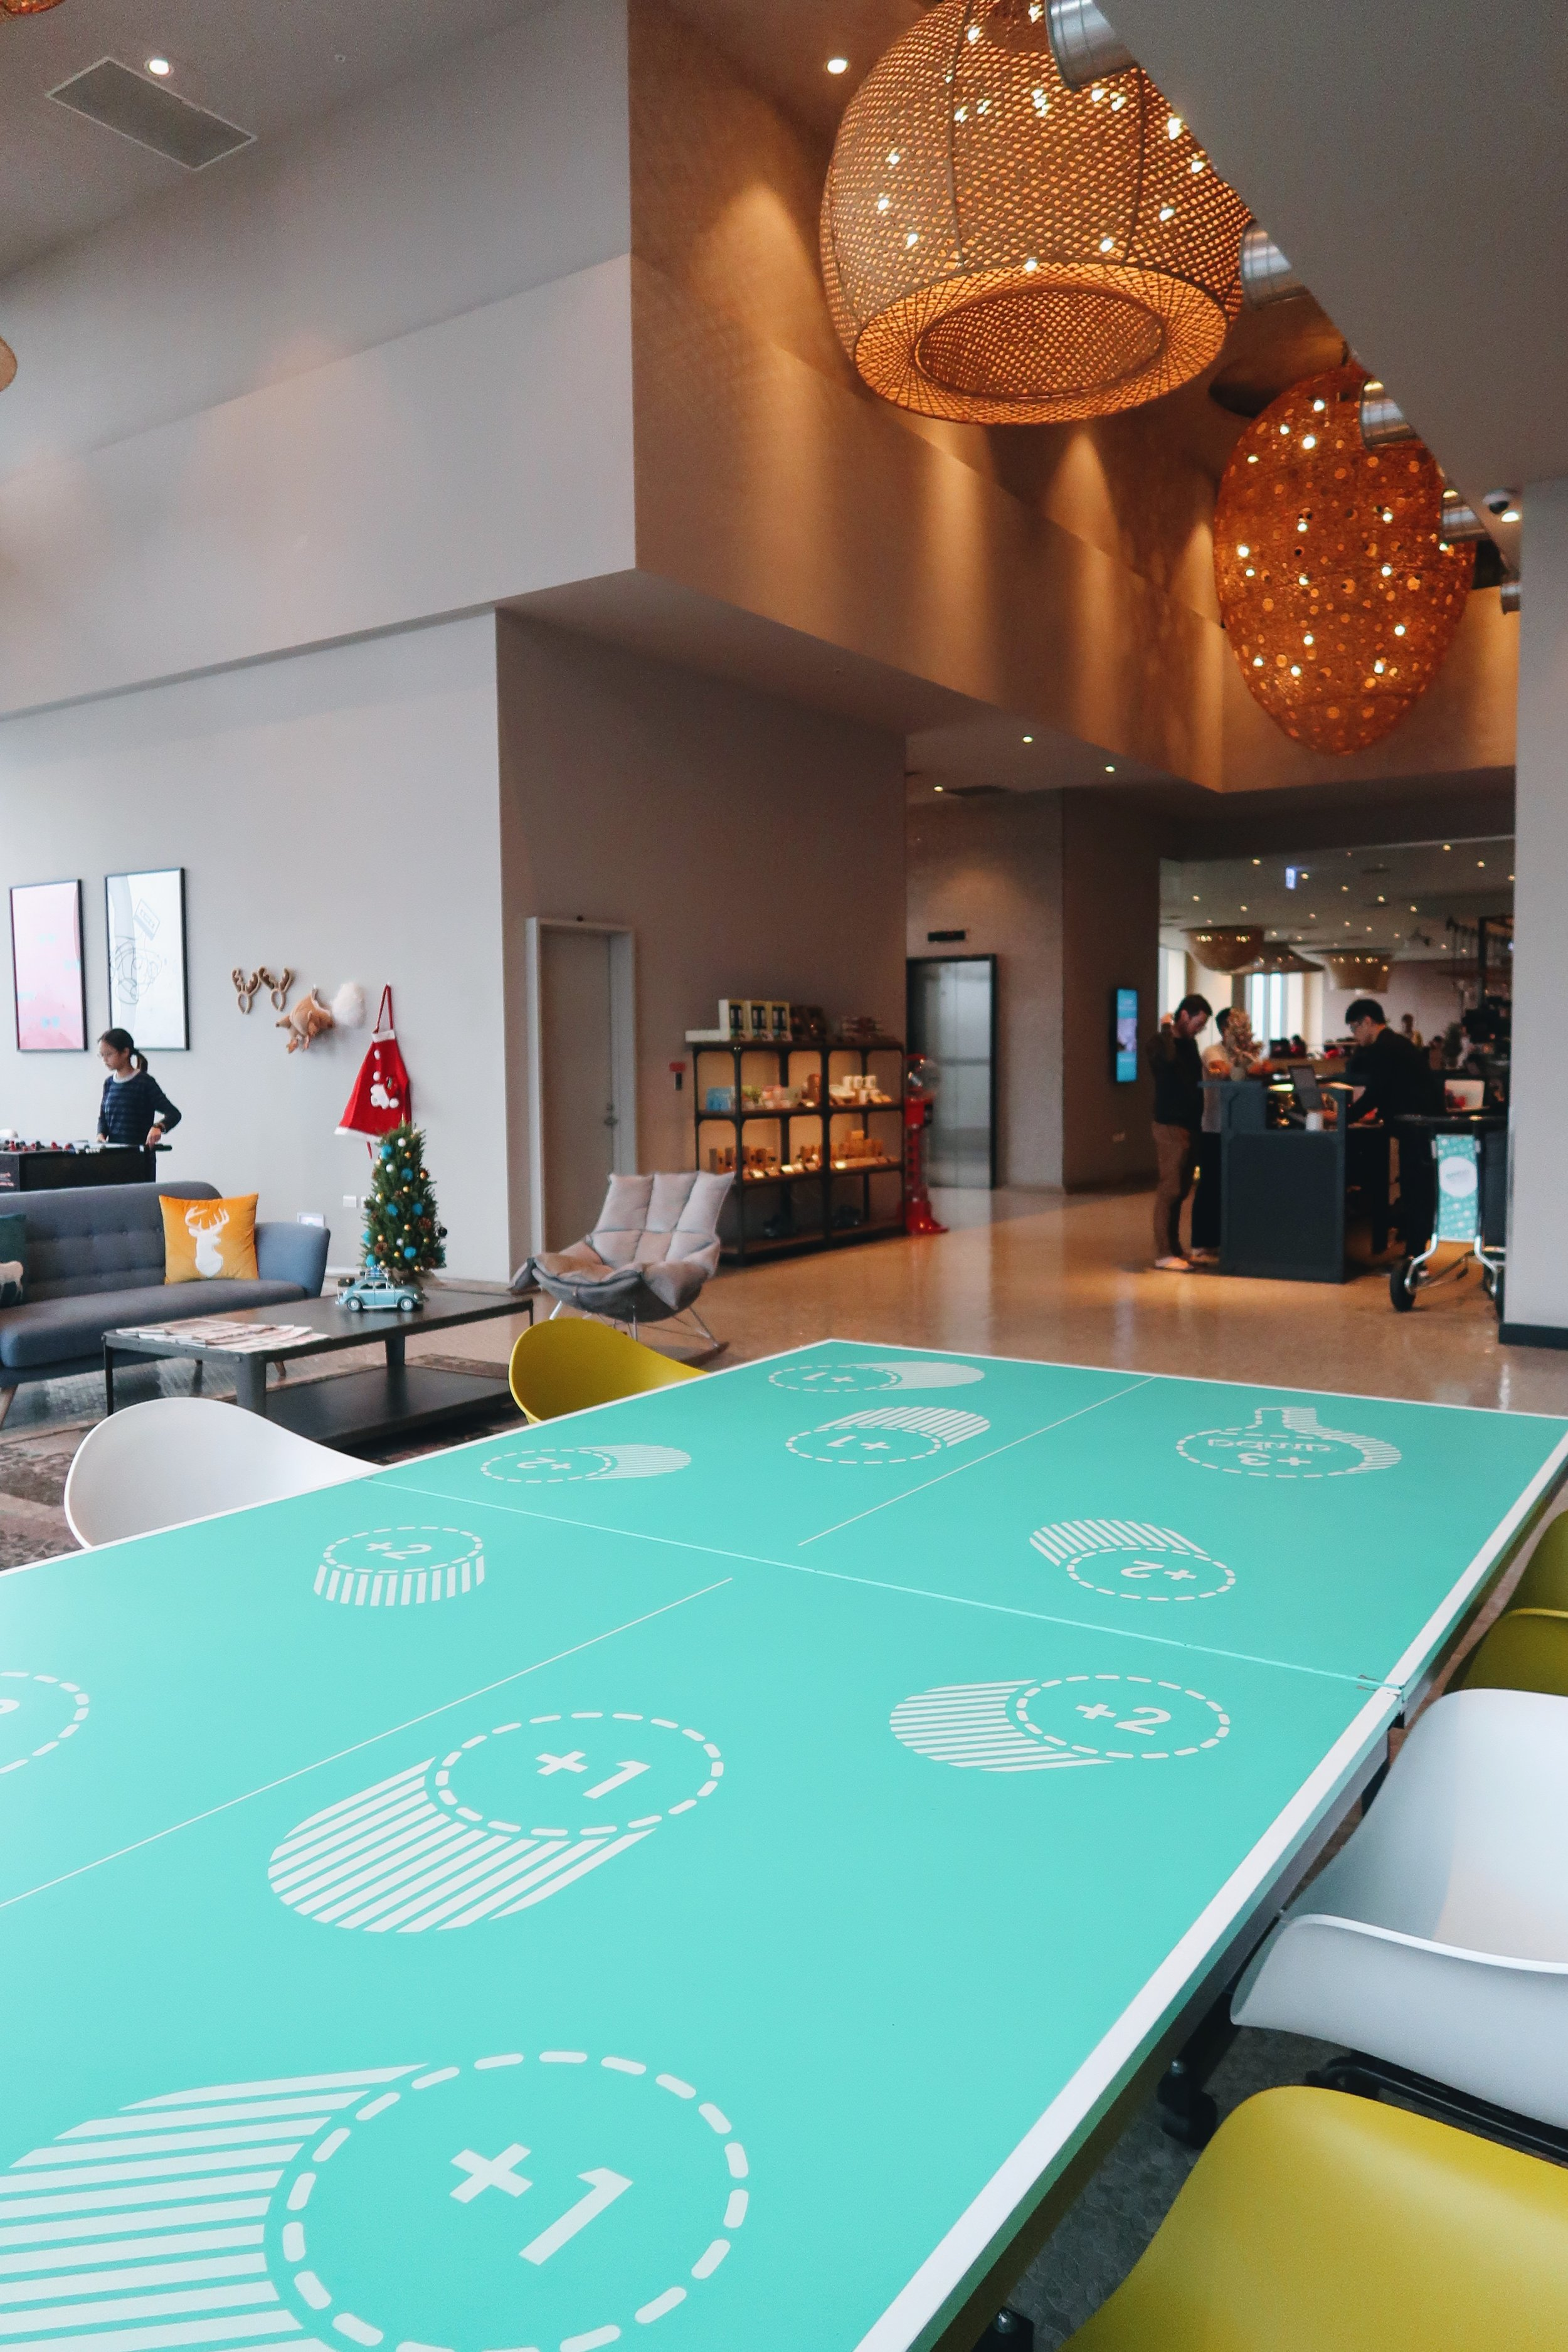 A Ping Pong table for guests to play and also as a table, very cool!